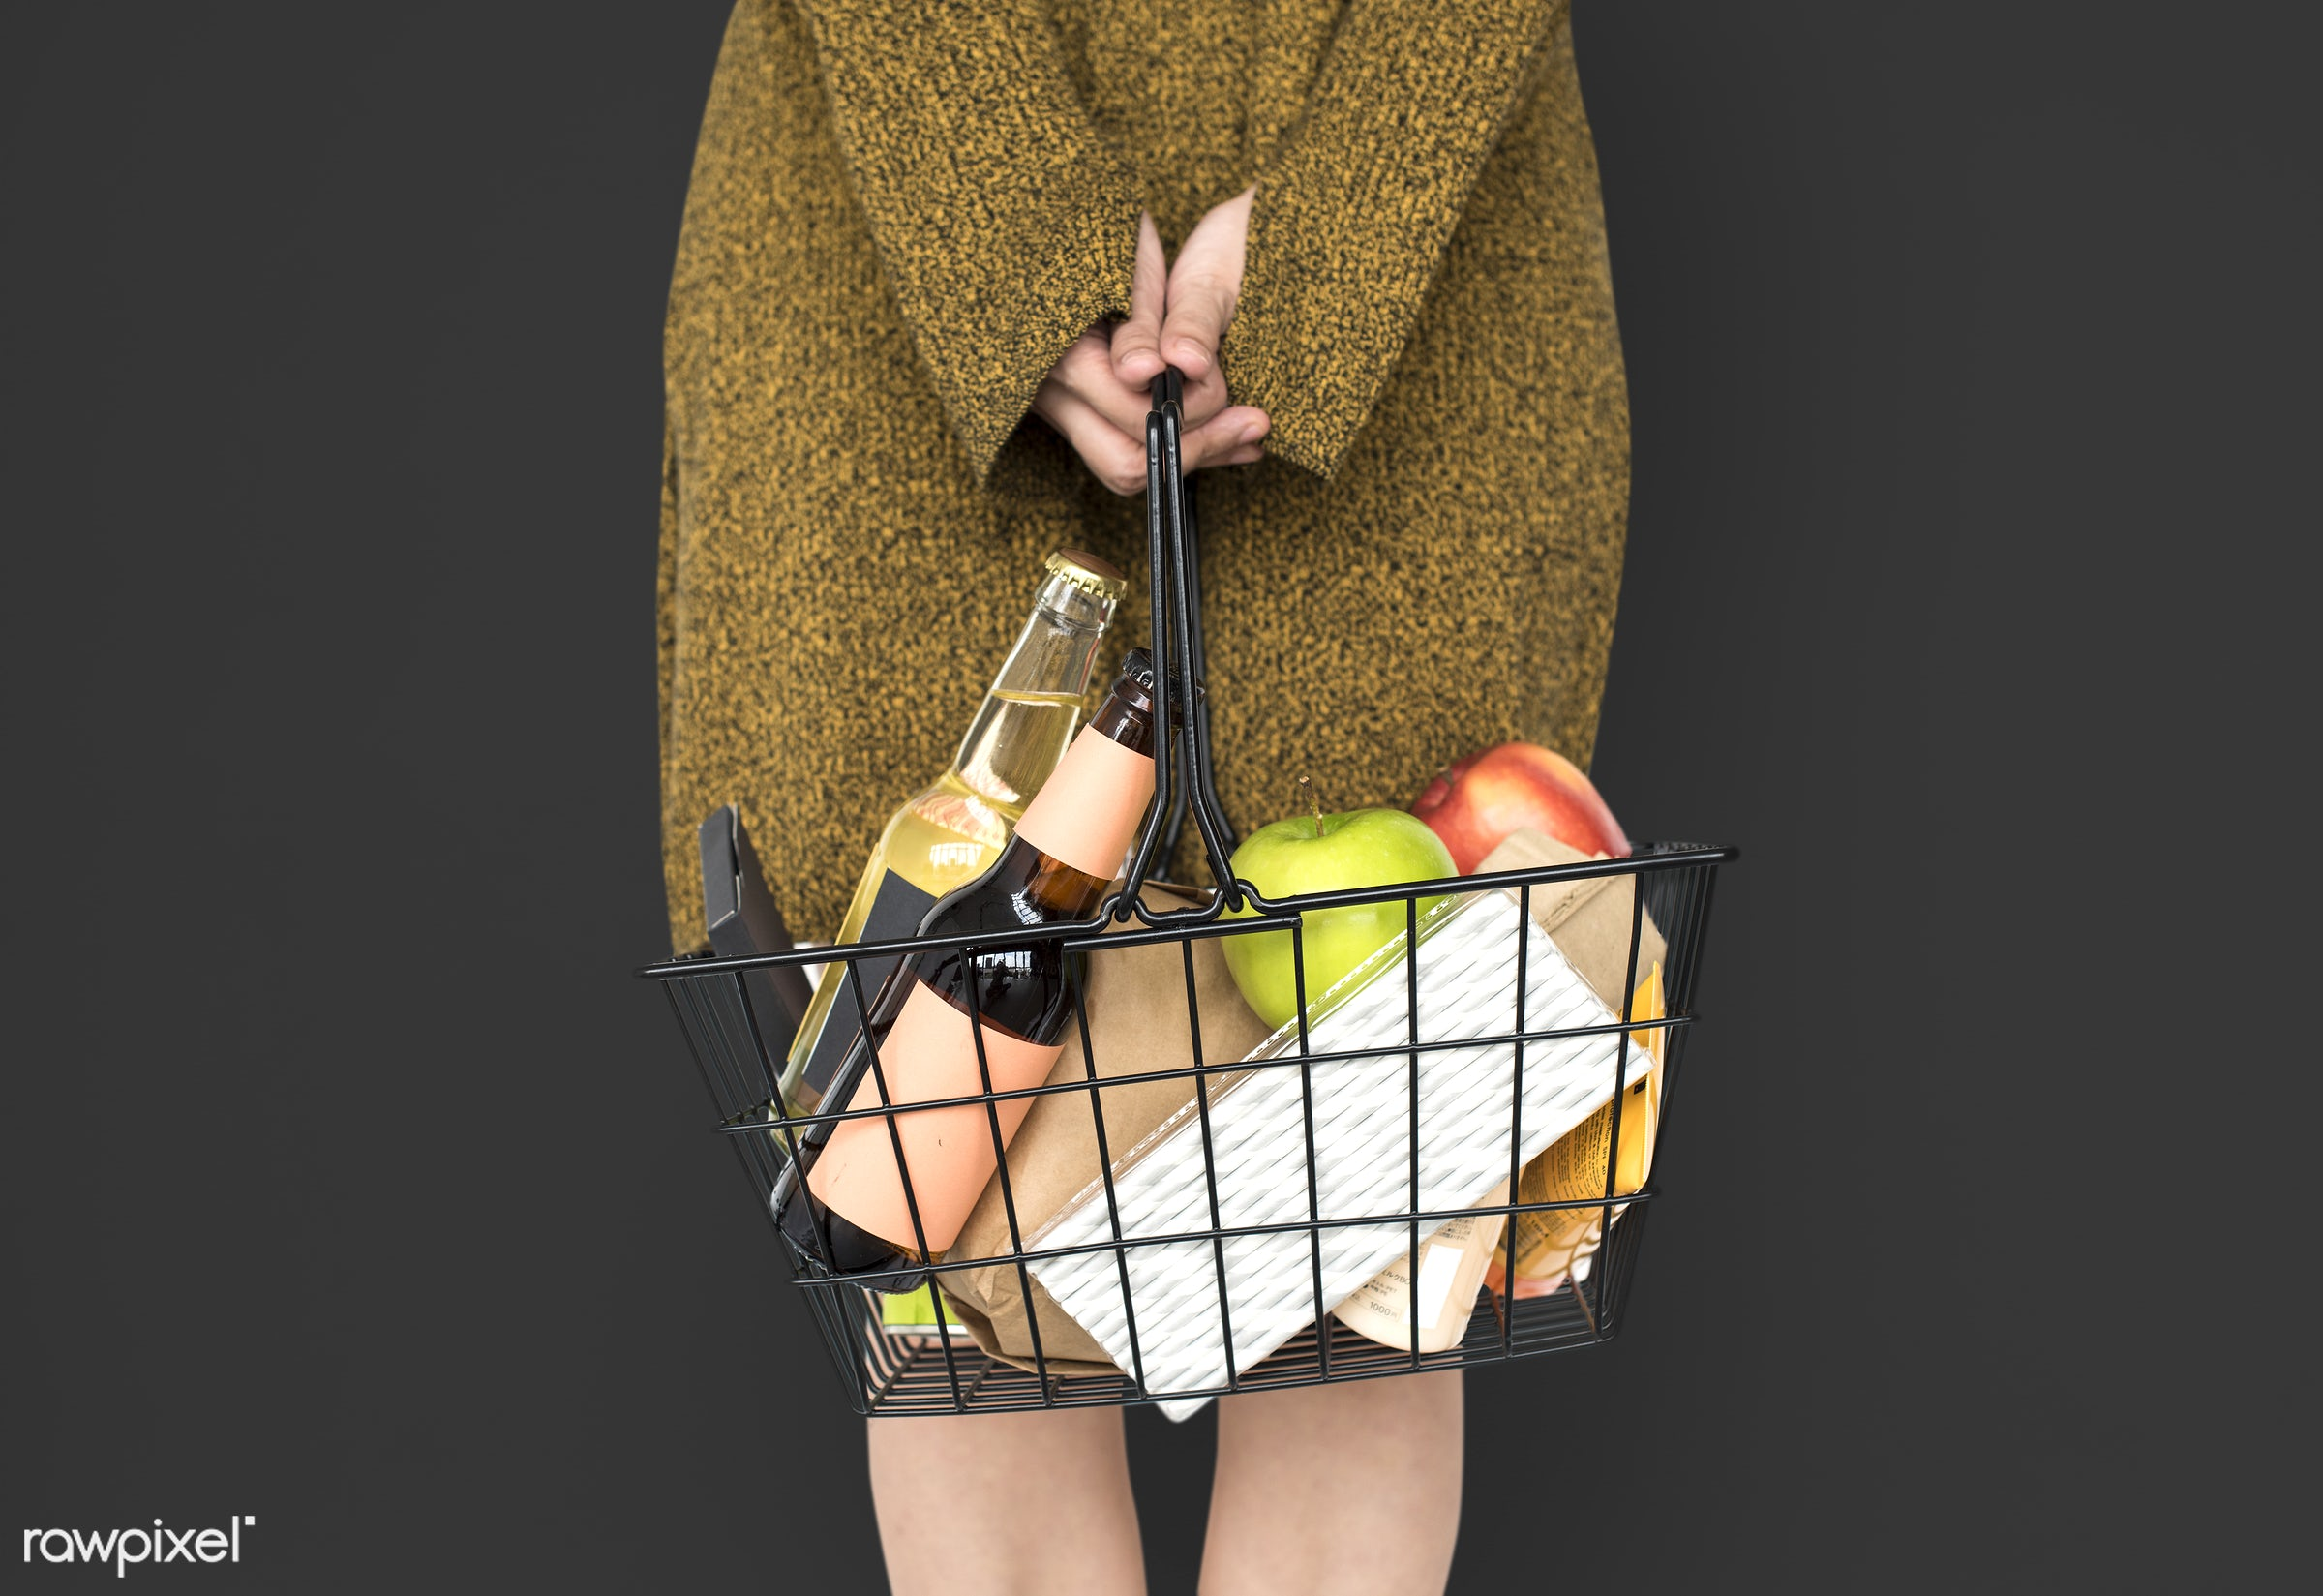 grocery, studio, person, goods, drinks, people, girl, carrying, solo, woman, casual, grey, wine, isolated, fruit, household...